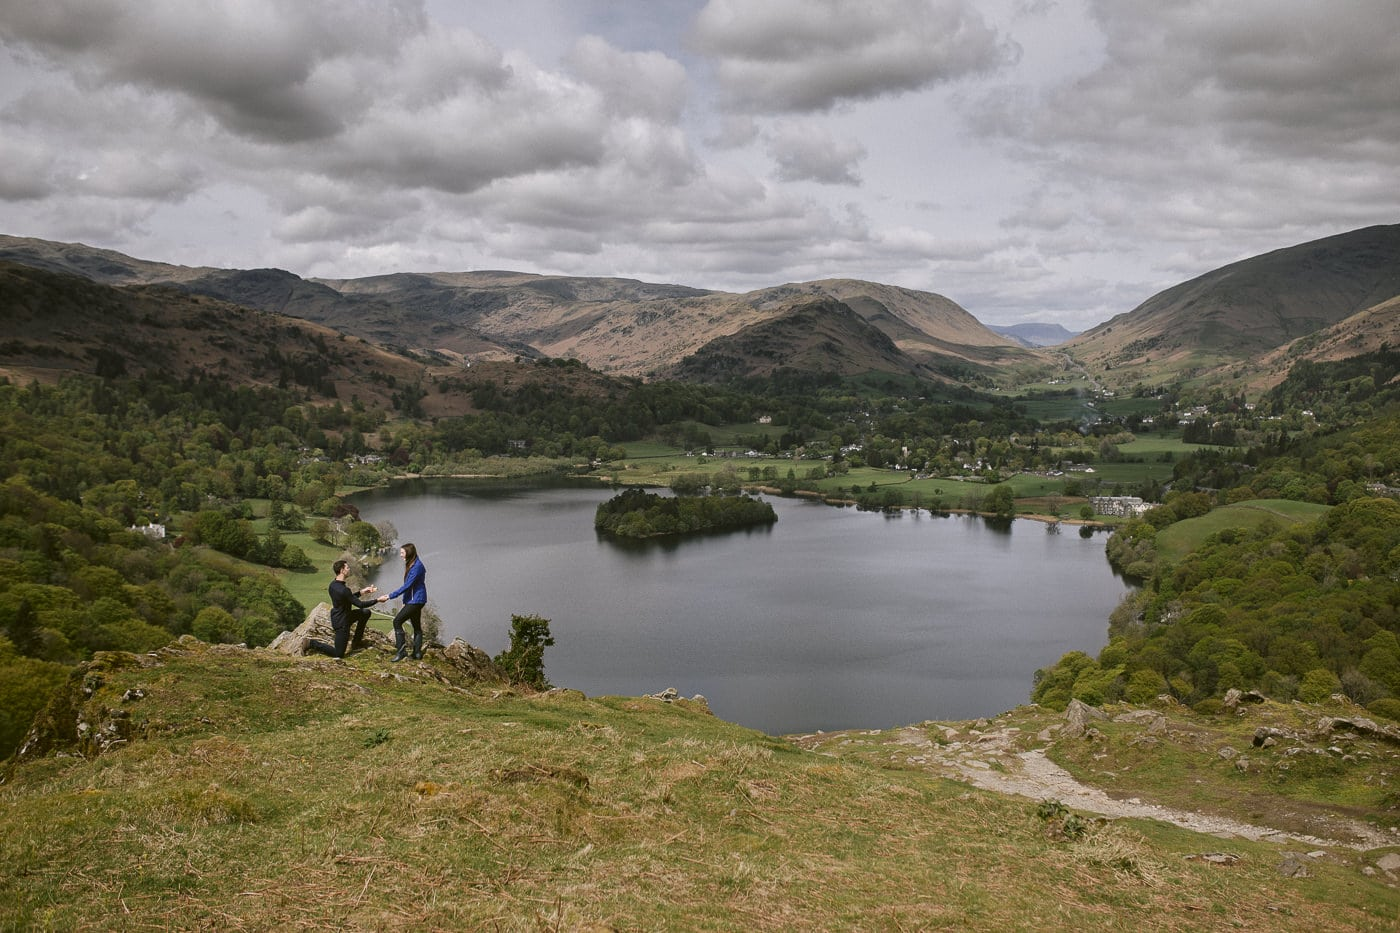 Wedding Proposal in the Lake District